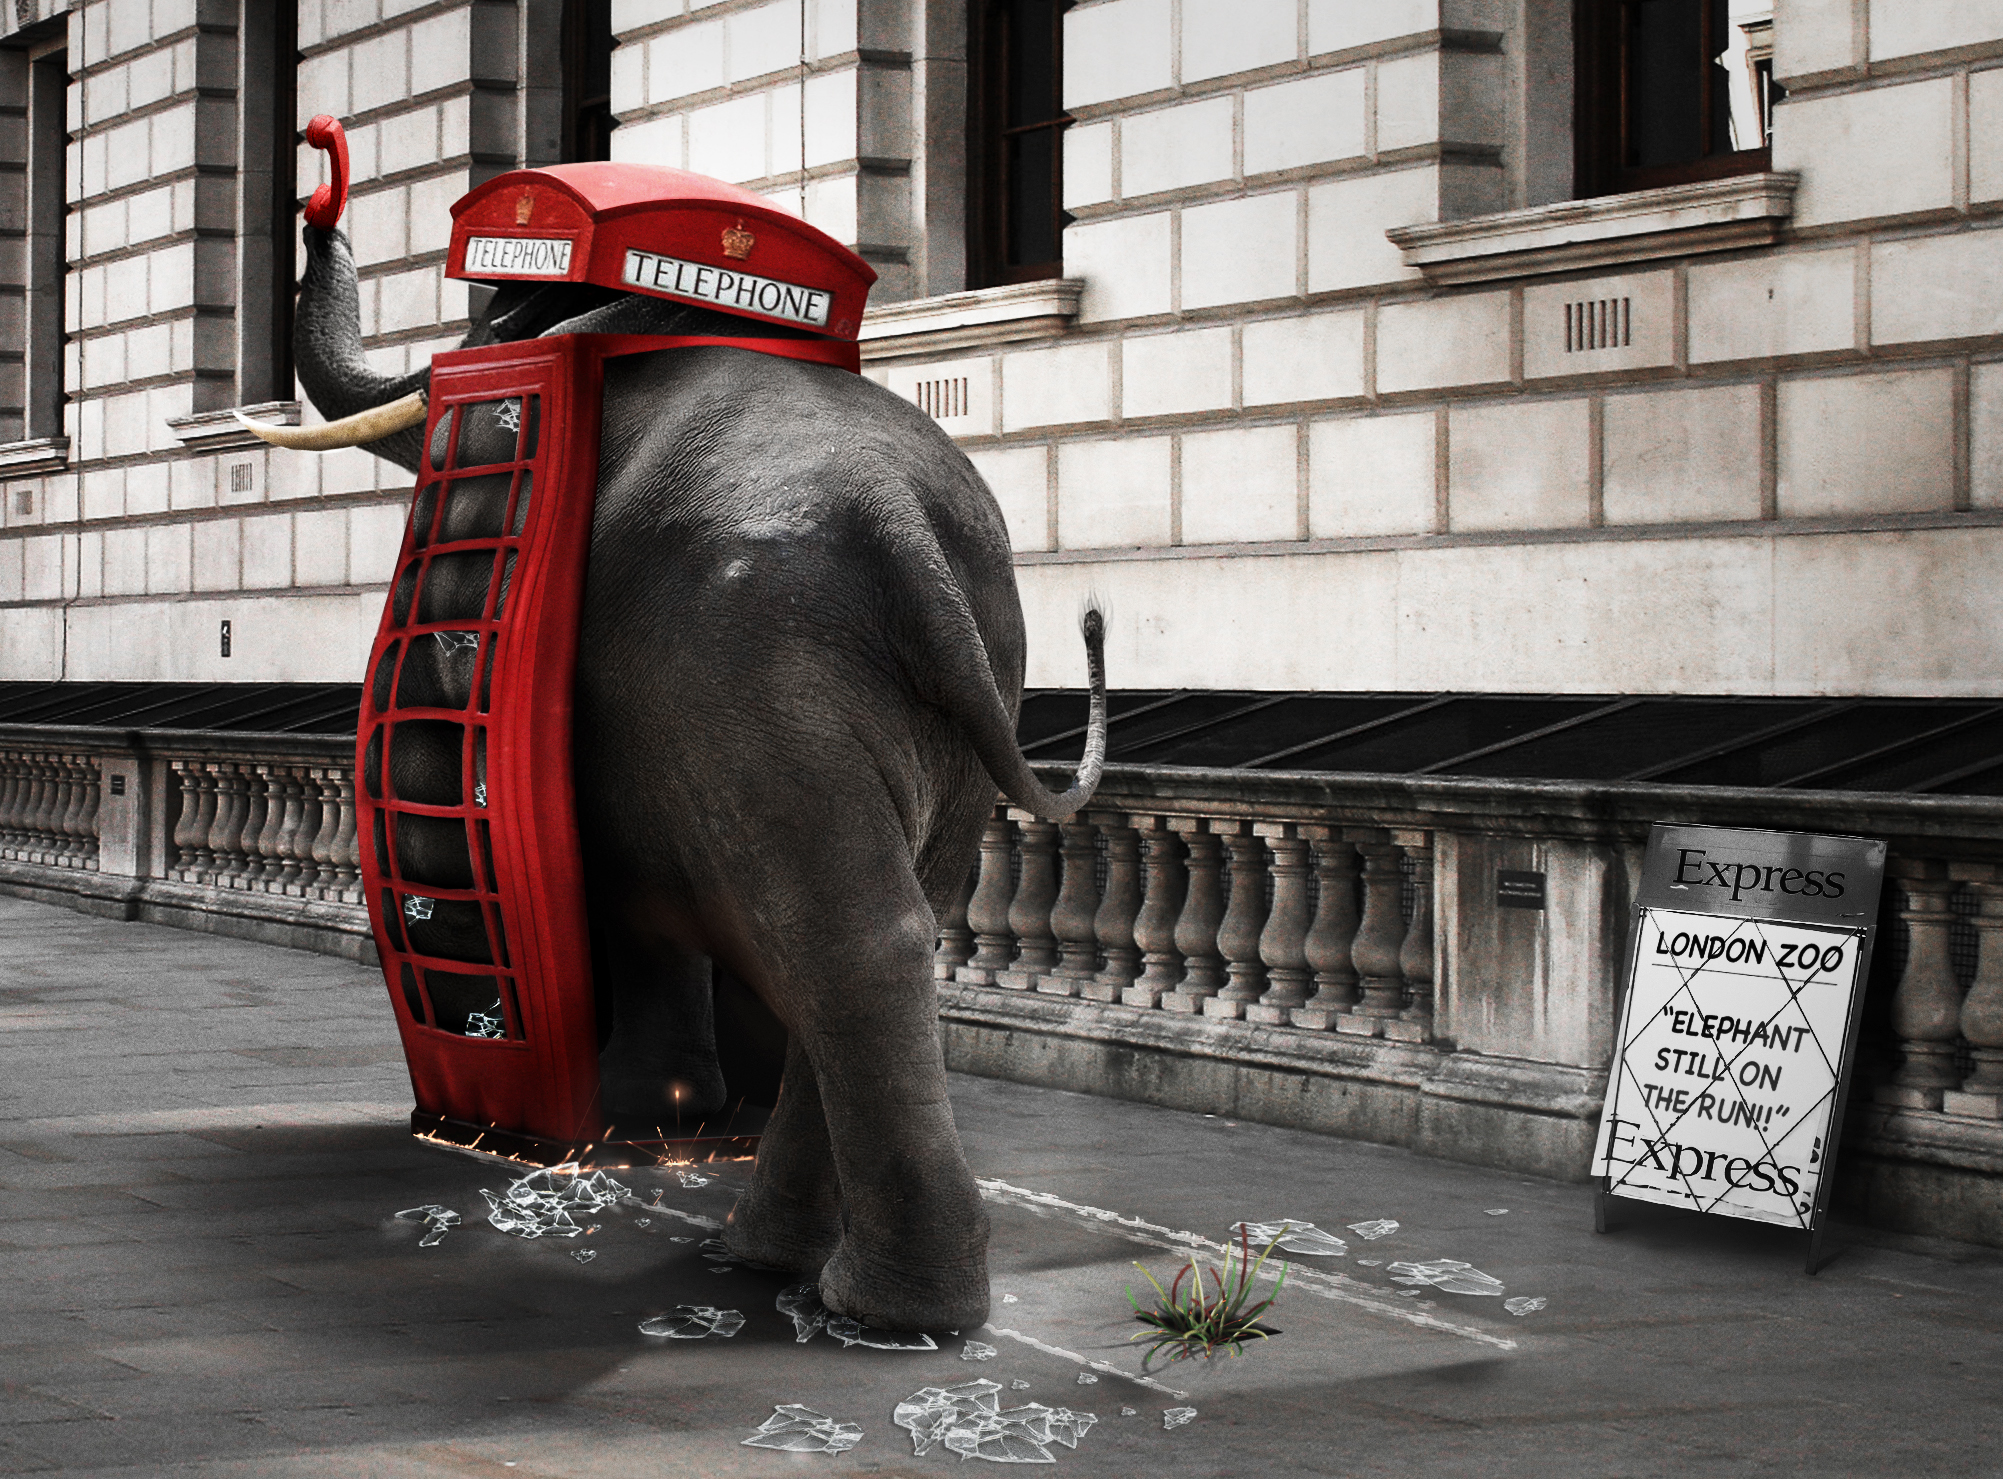 The Elephant in the Phone Booth